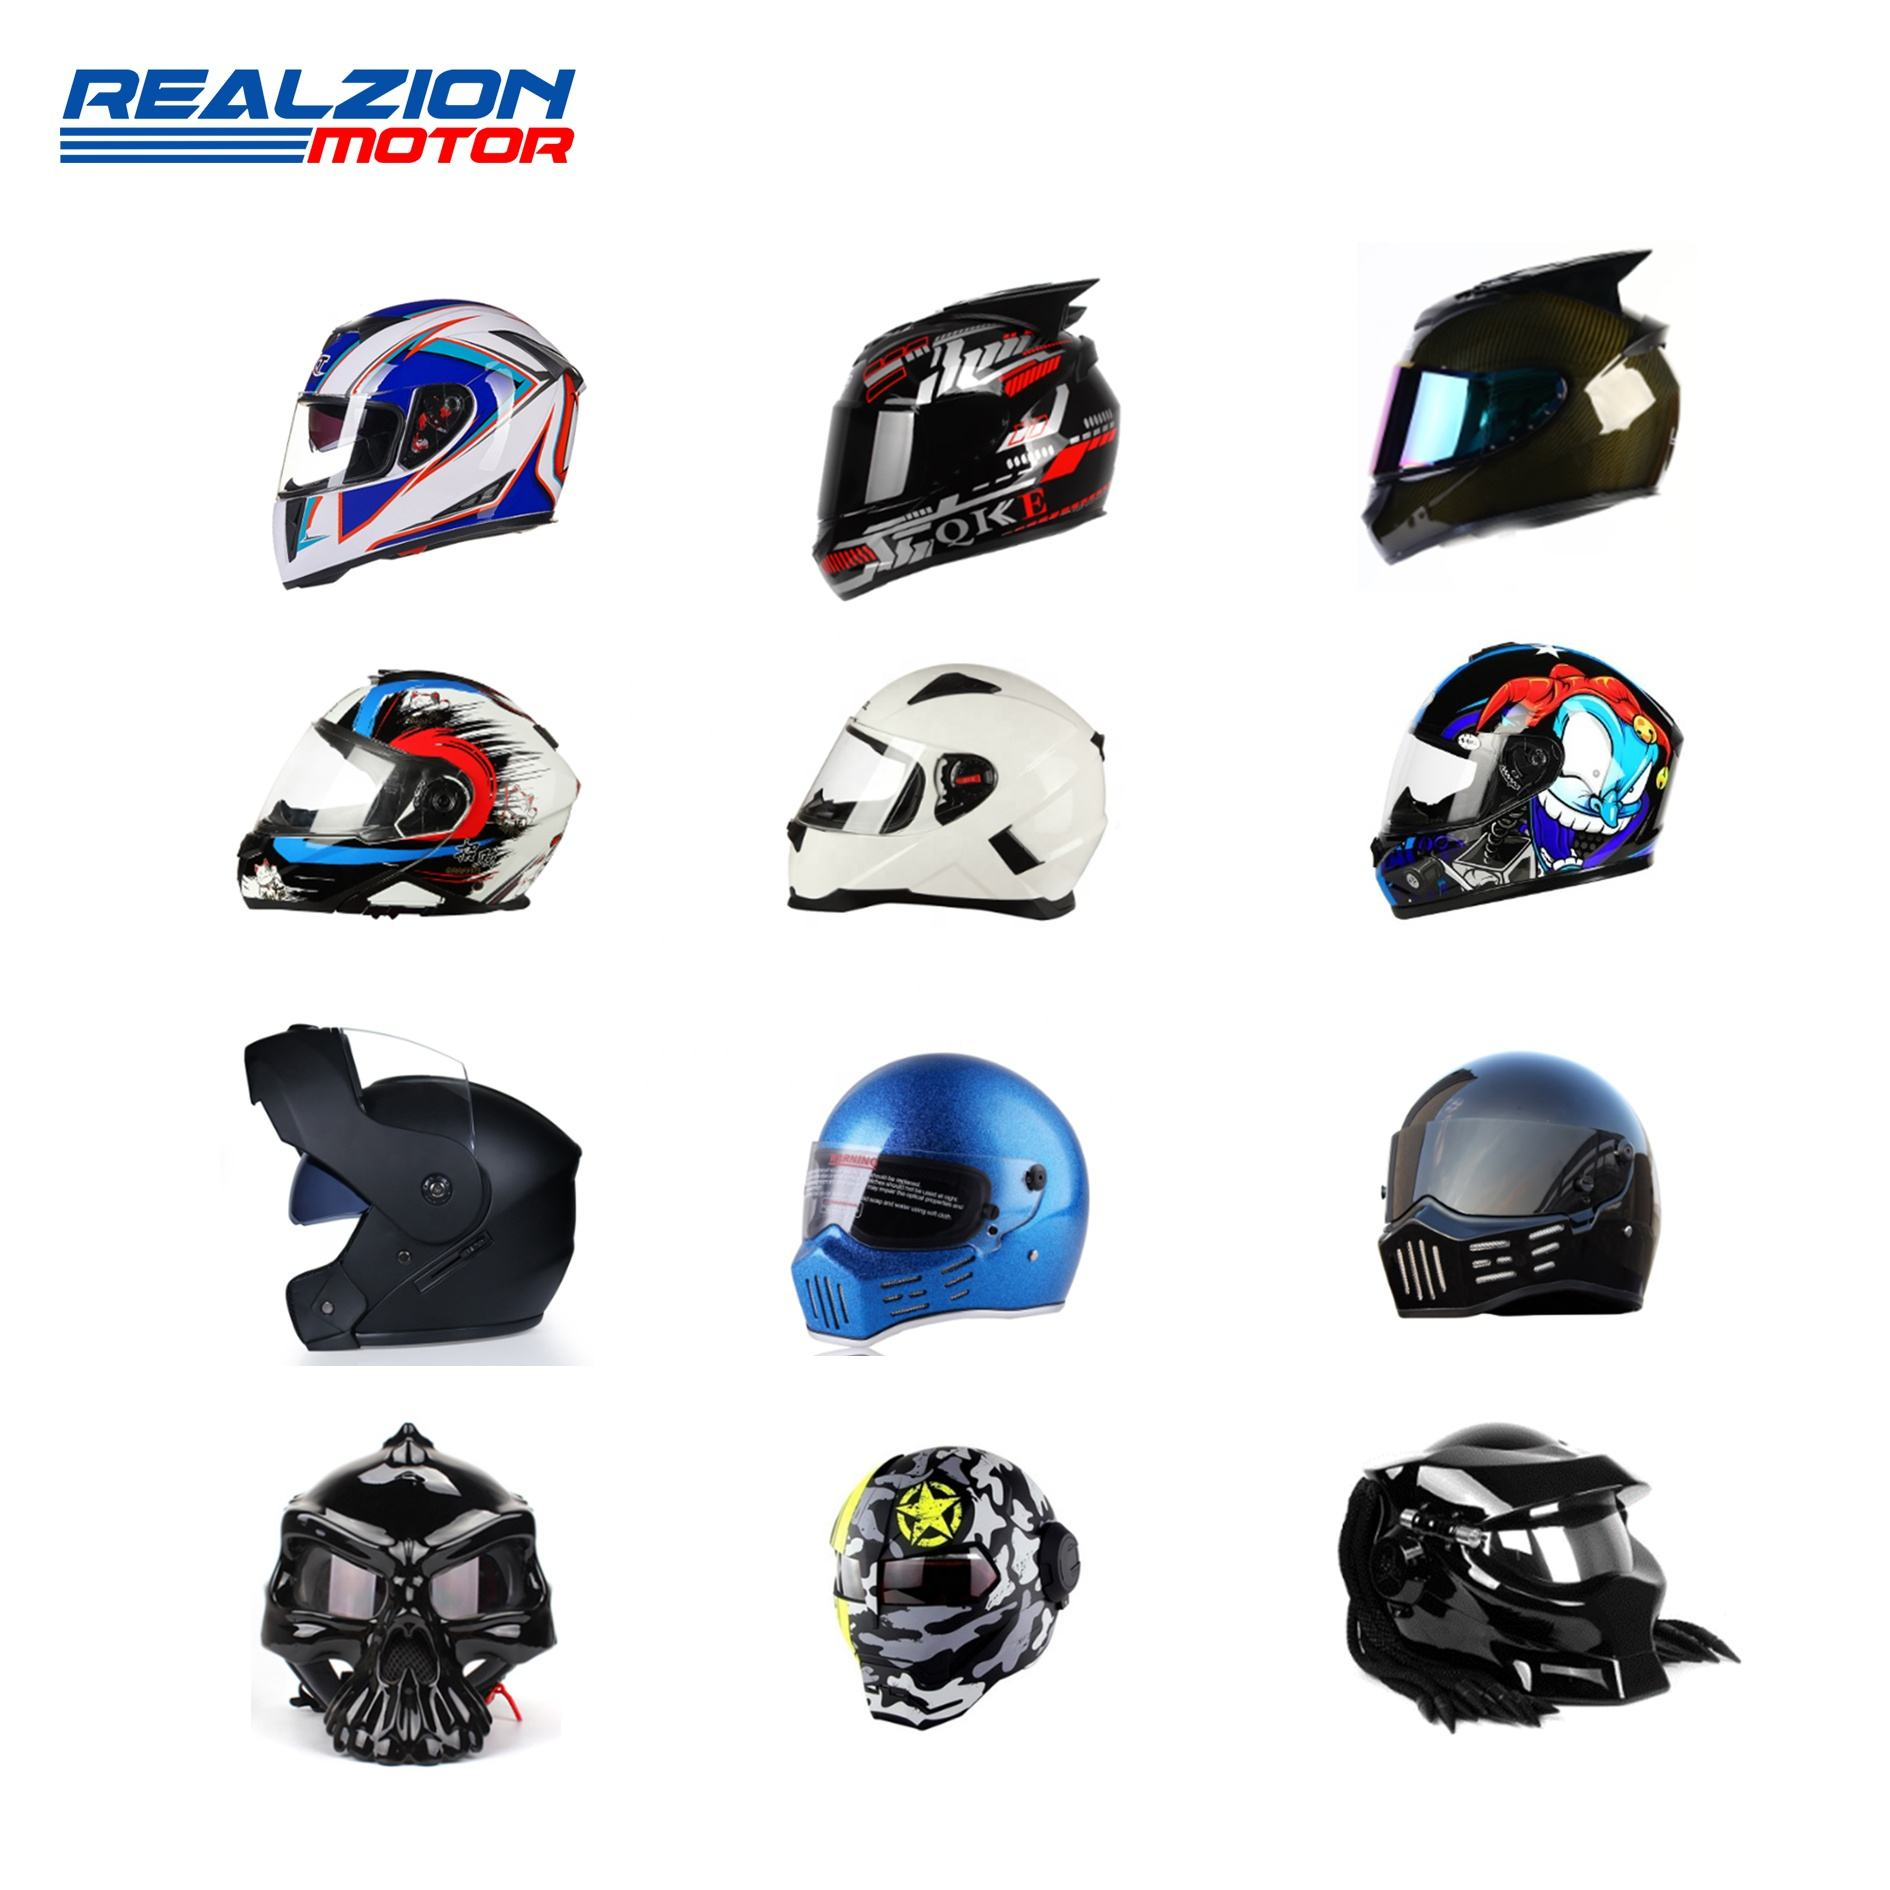 REALZION Customize Motocross Motorcycle Accessories Motorbike Racing DOT ECE Certification Size Carbon Fiber Full Face Helmet